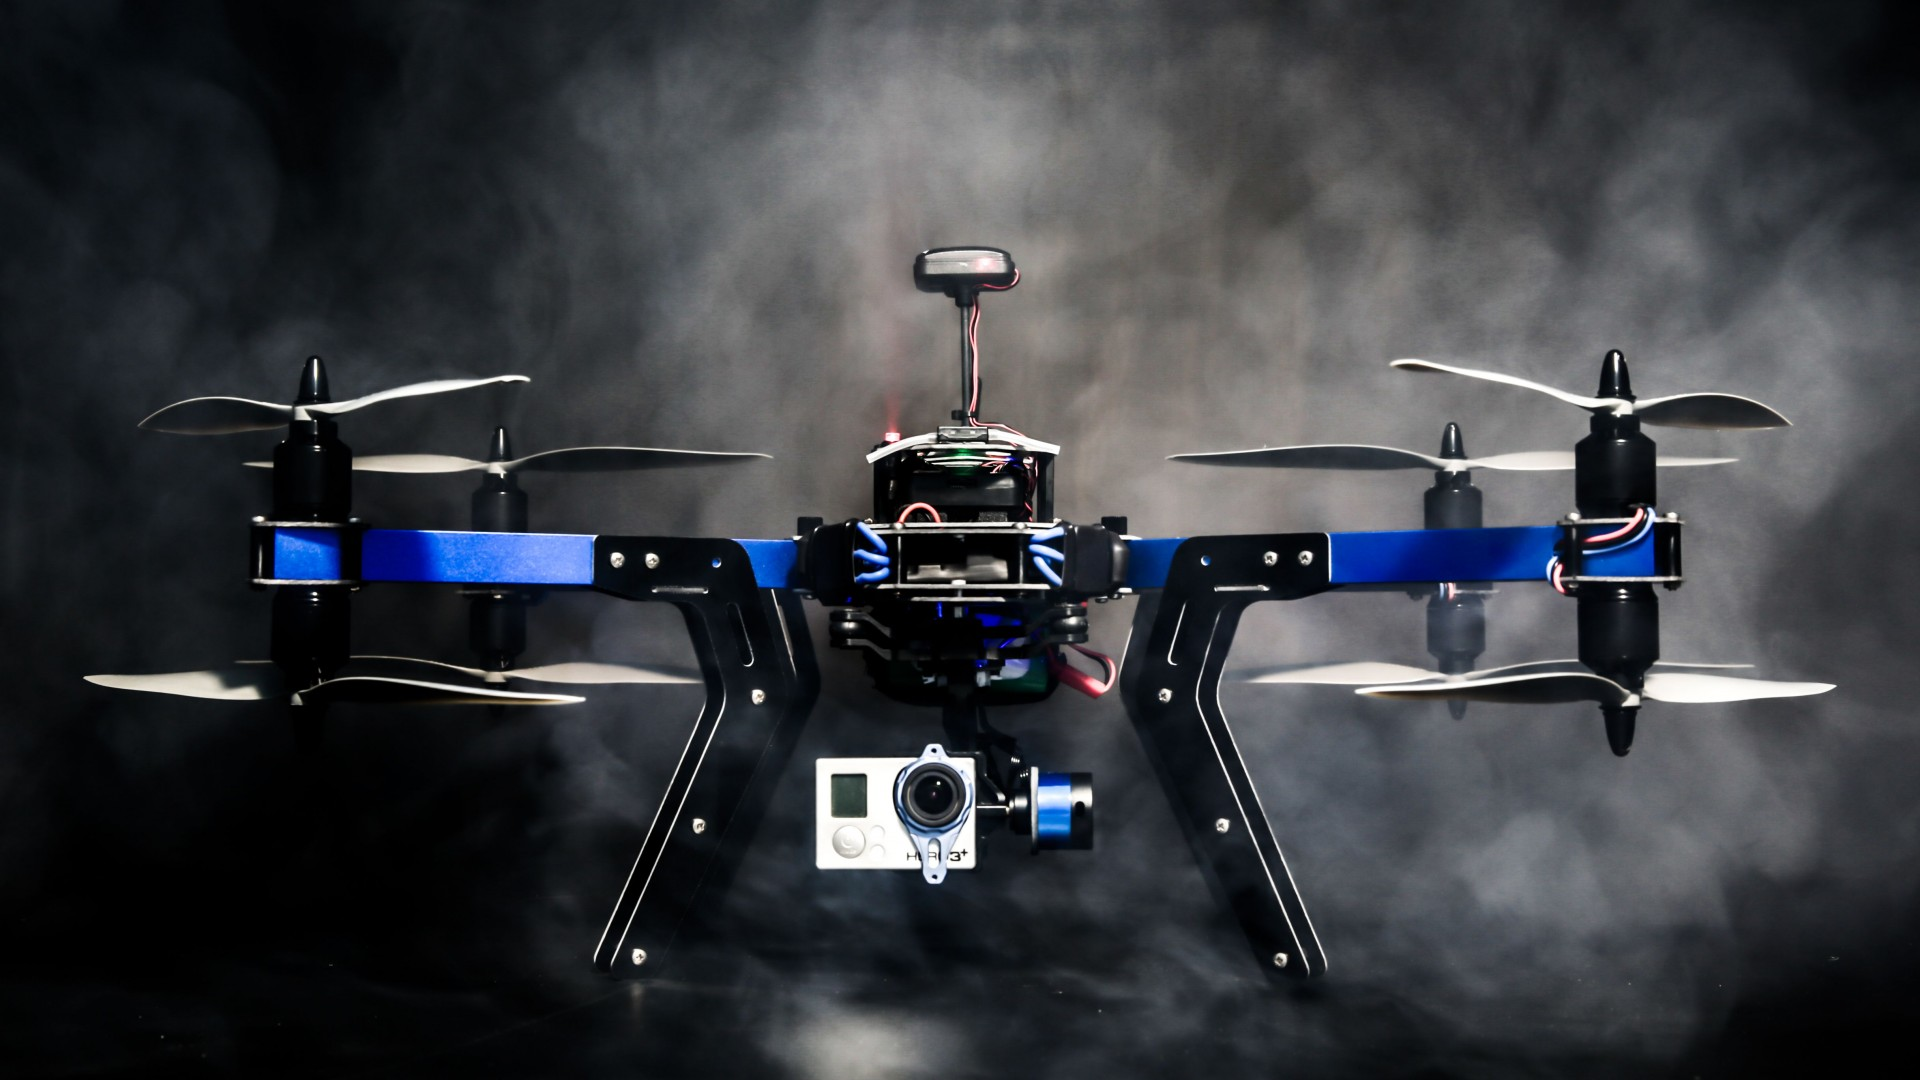 definition of a drone with Quadcopter Wallpaper on Service robot besides Erle Spider Drone Araignee Fonctionnant Grace Ubuntu as well Nouvelle Camera Cinema Chez Air Libre La Red Raven further Quadcopter Wallpaper besides Uav Lidar Applications Services Technology Systems.